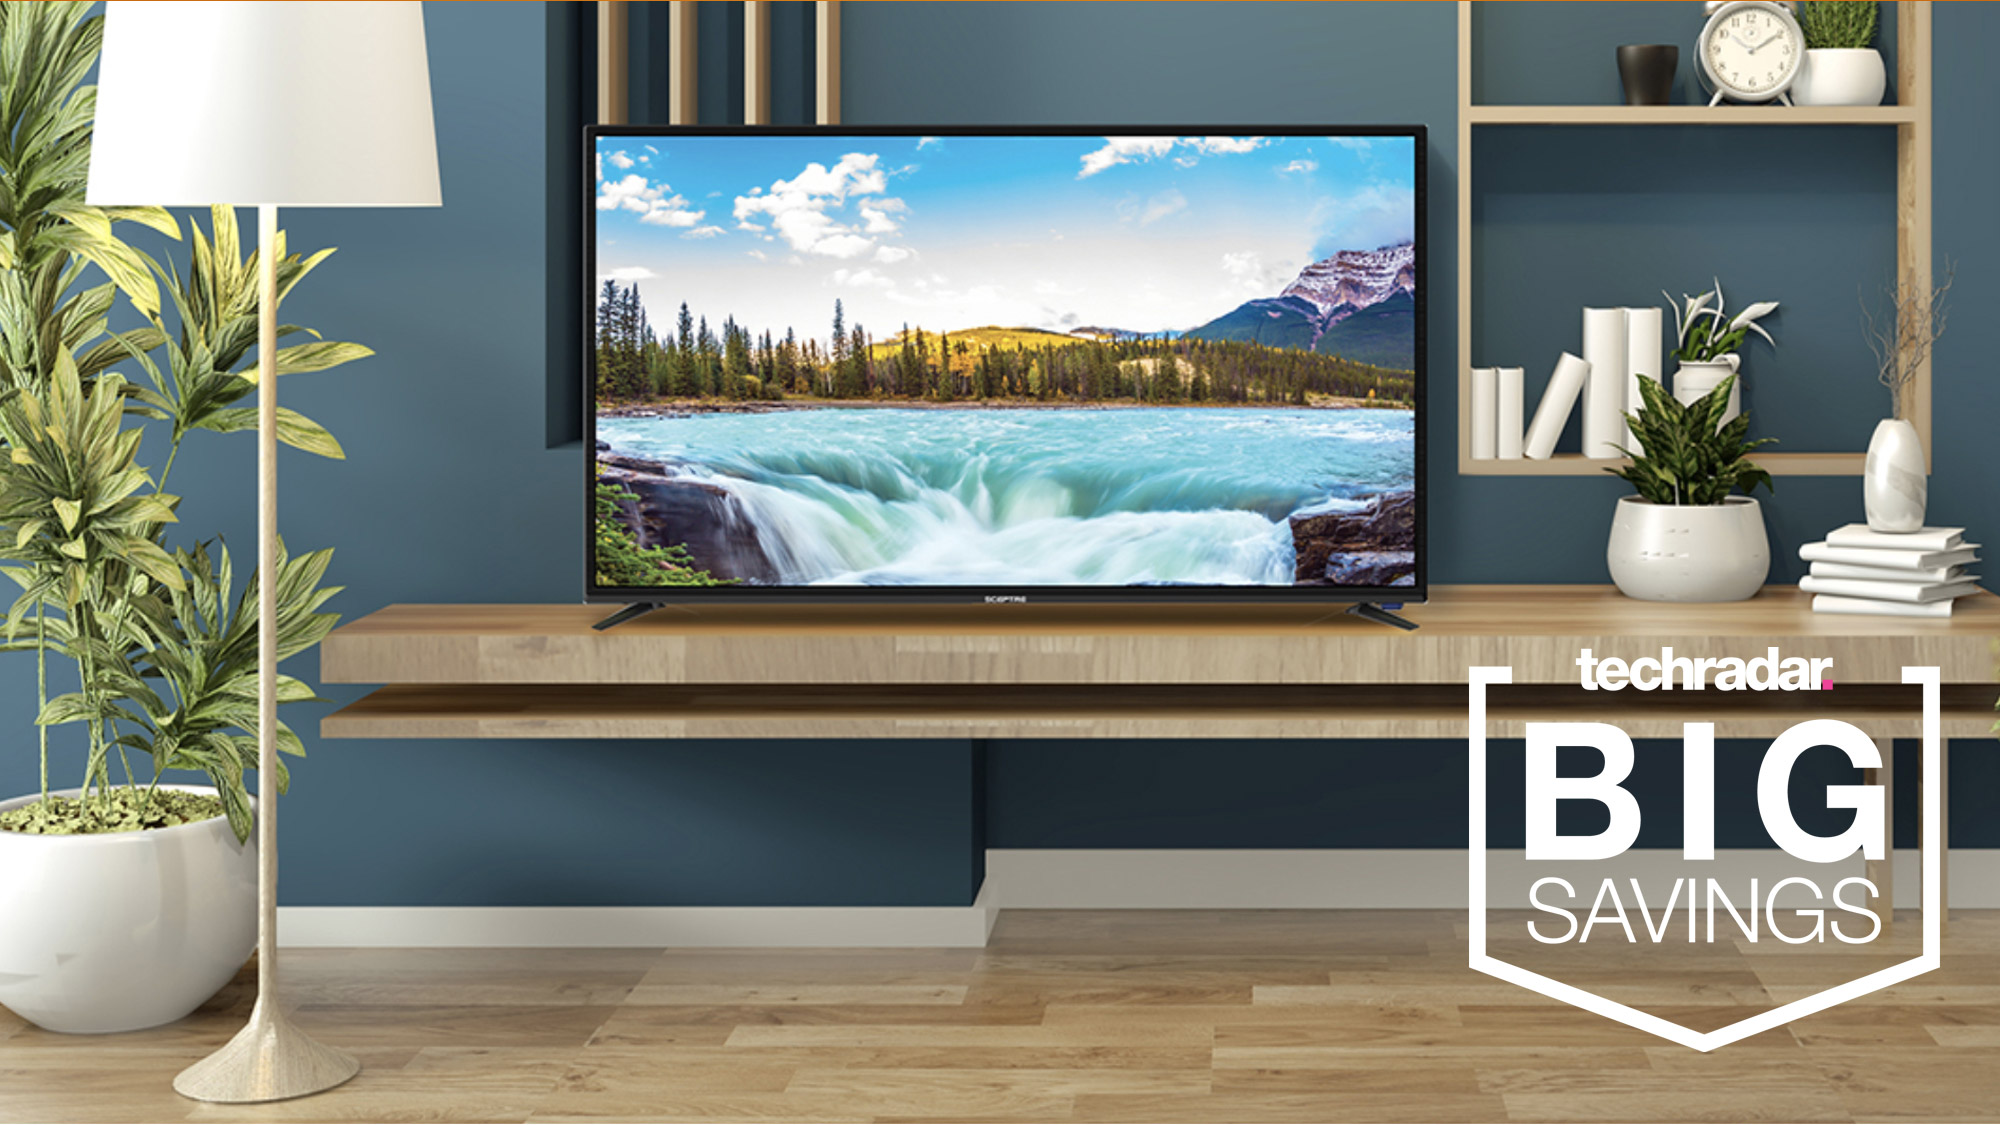 Walmart Has This 50 Inch 4k Tv On Sale For Just 189 99 Techradar